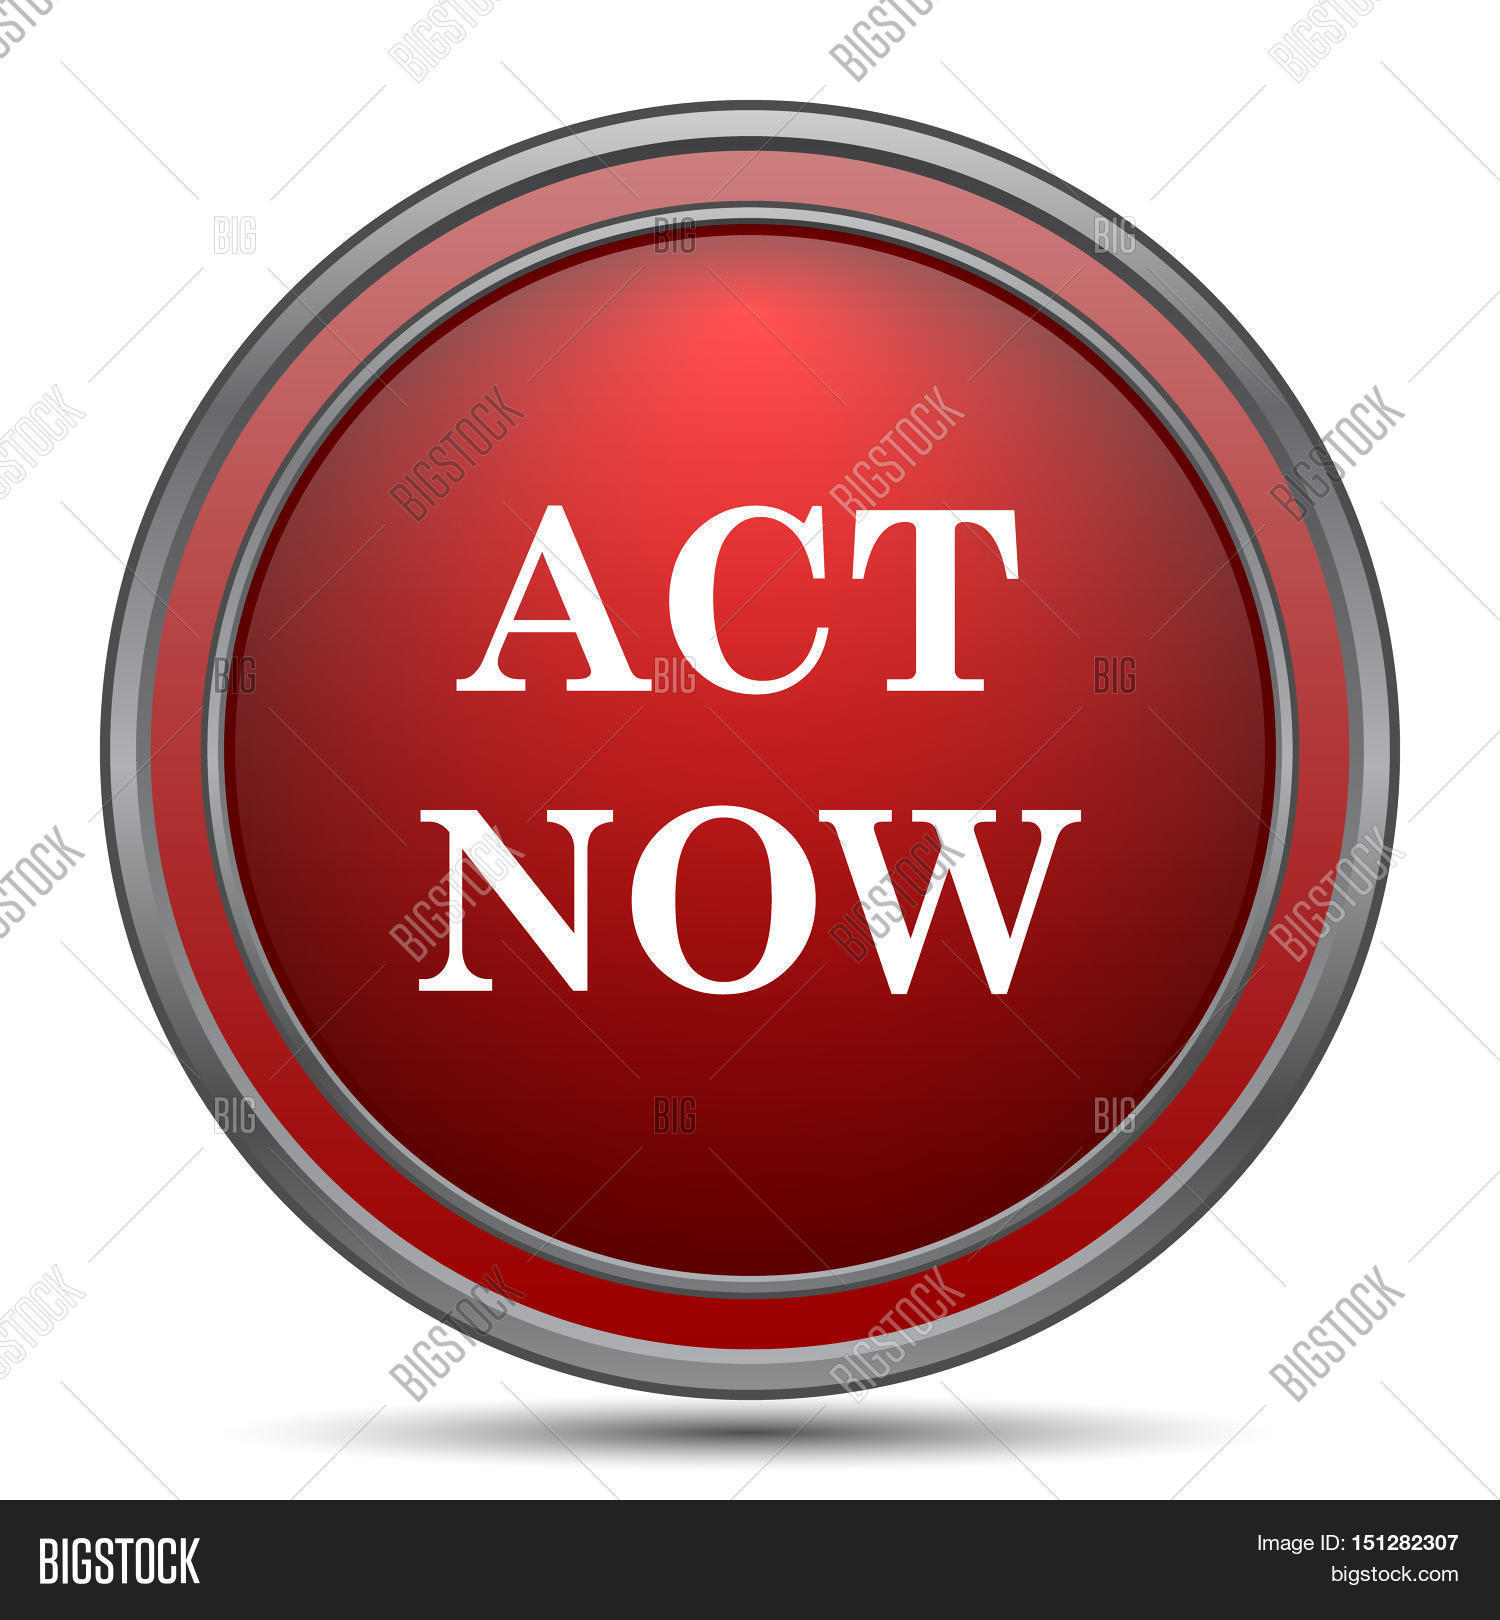 Act now icon 1